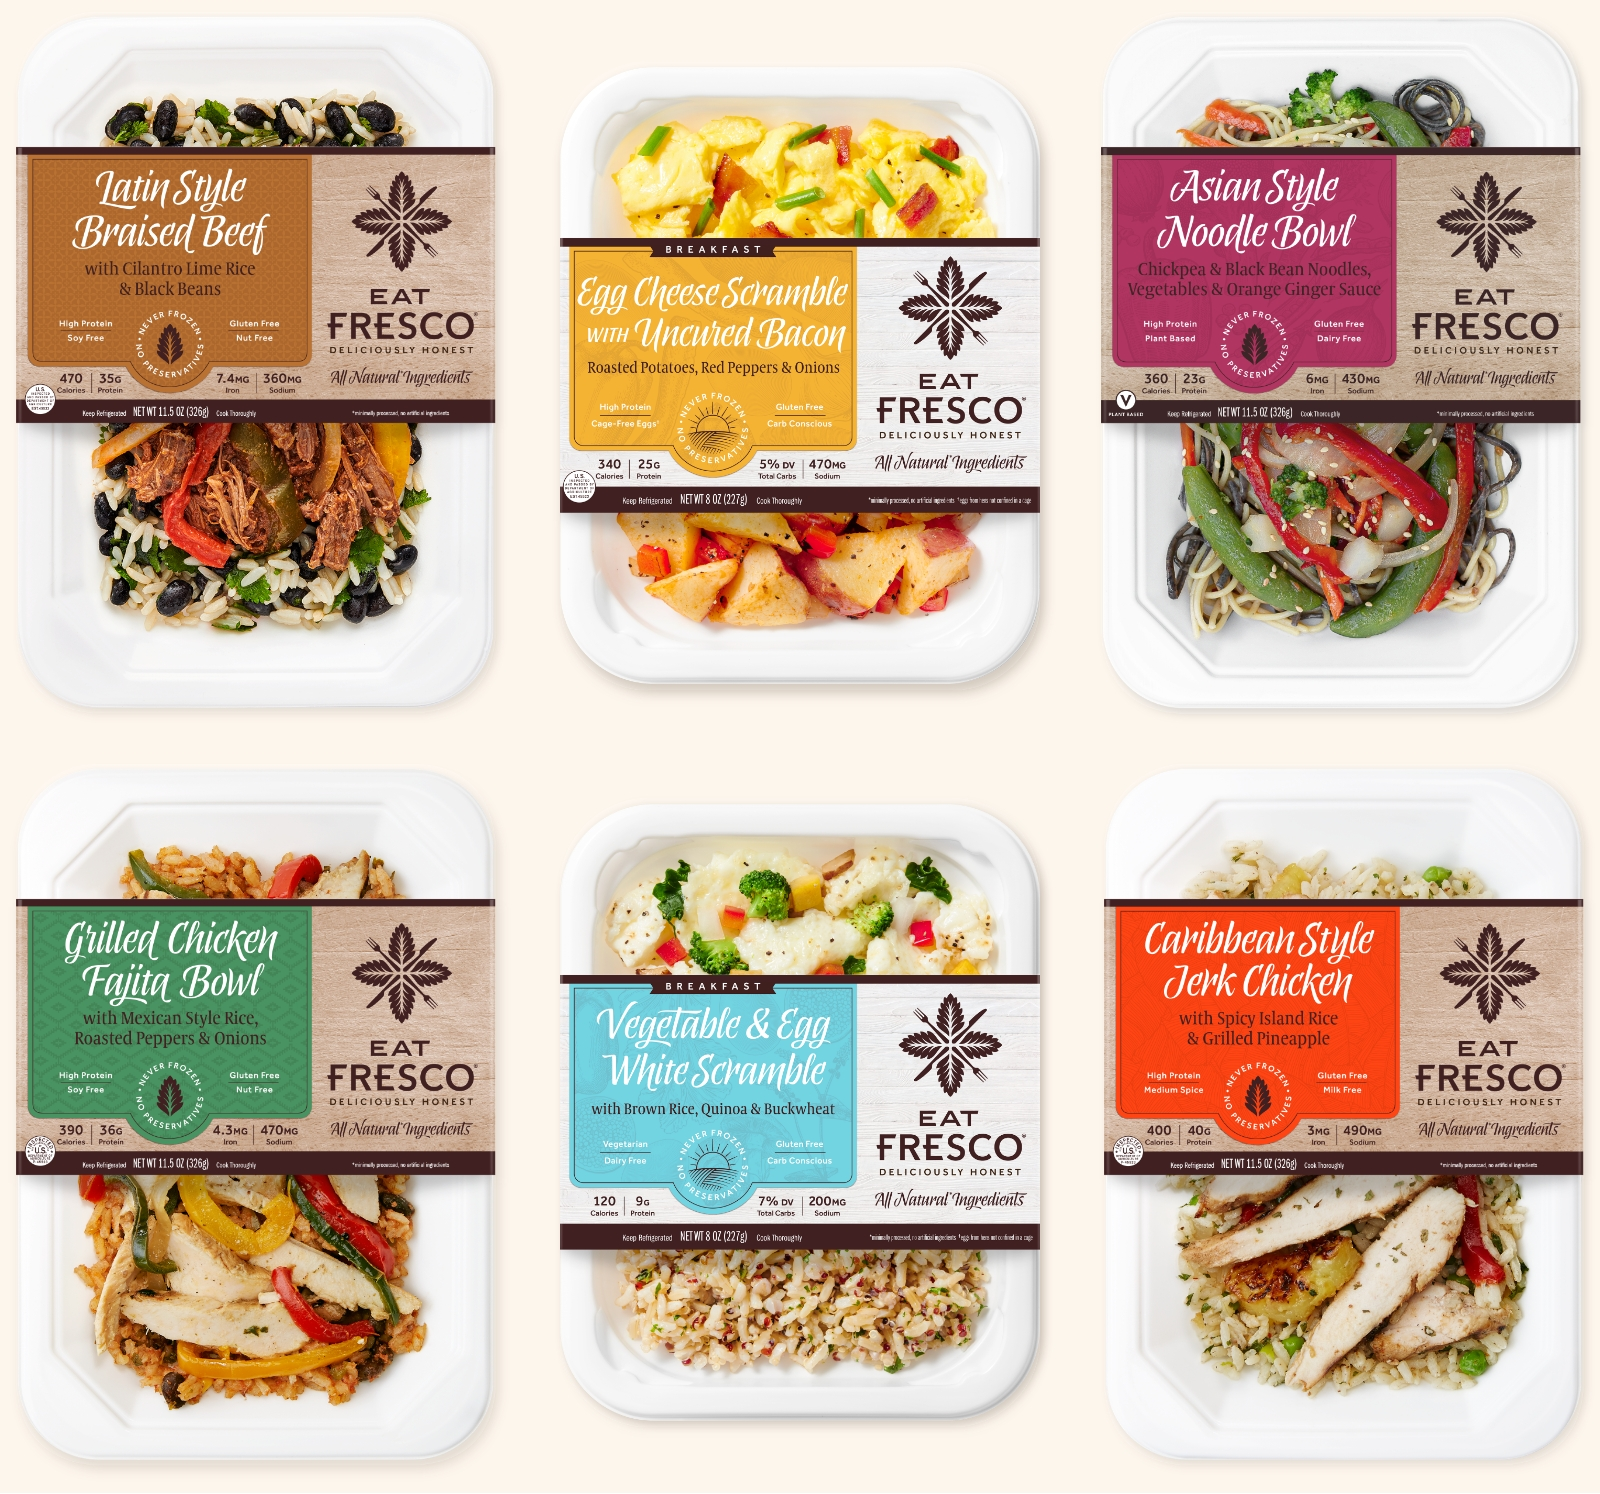 12 Eat Fresco breakfasts, lunches, and dinners to choose from.